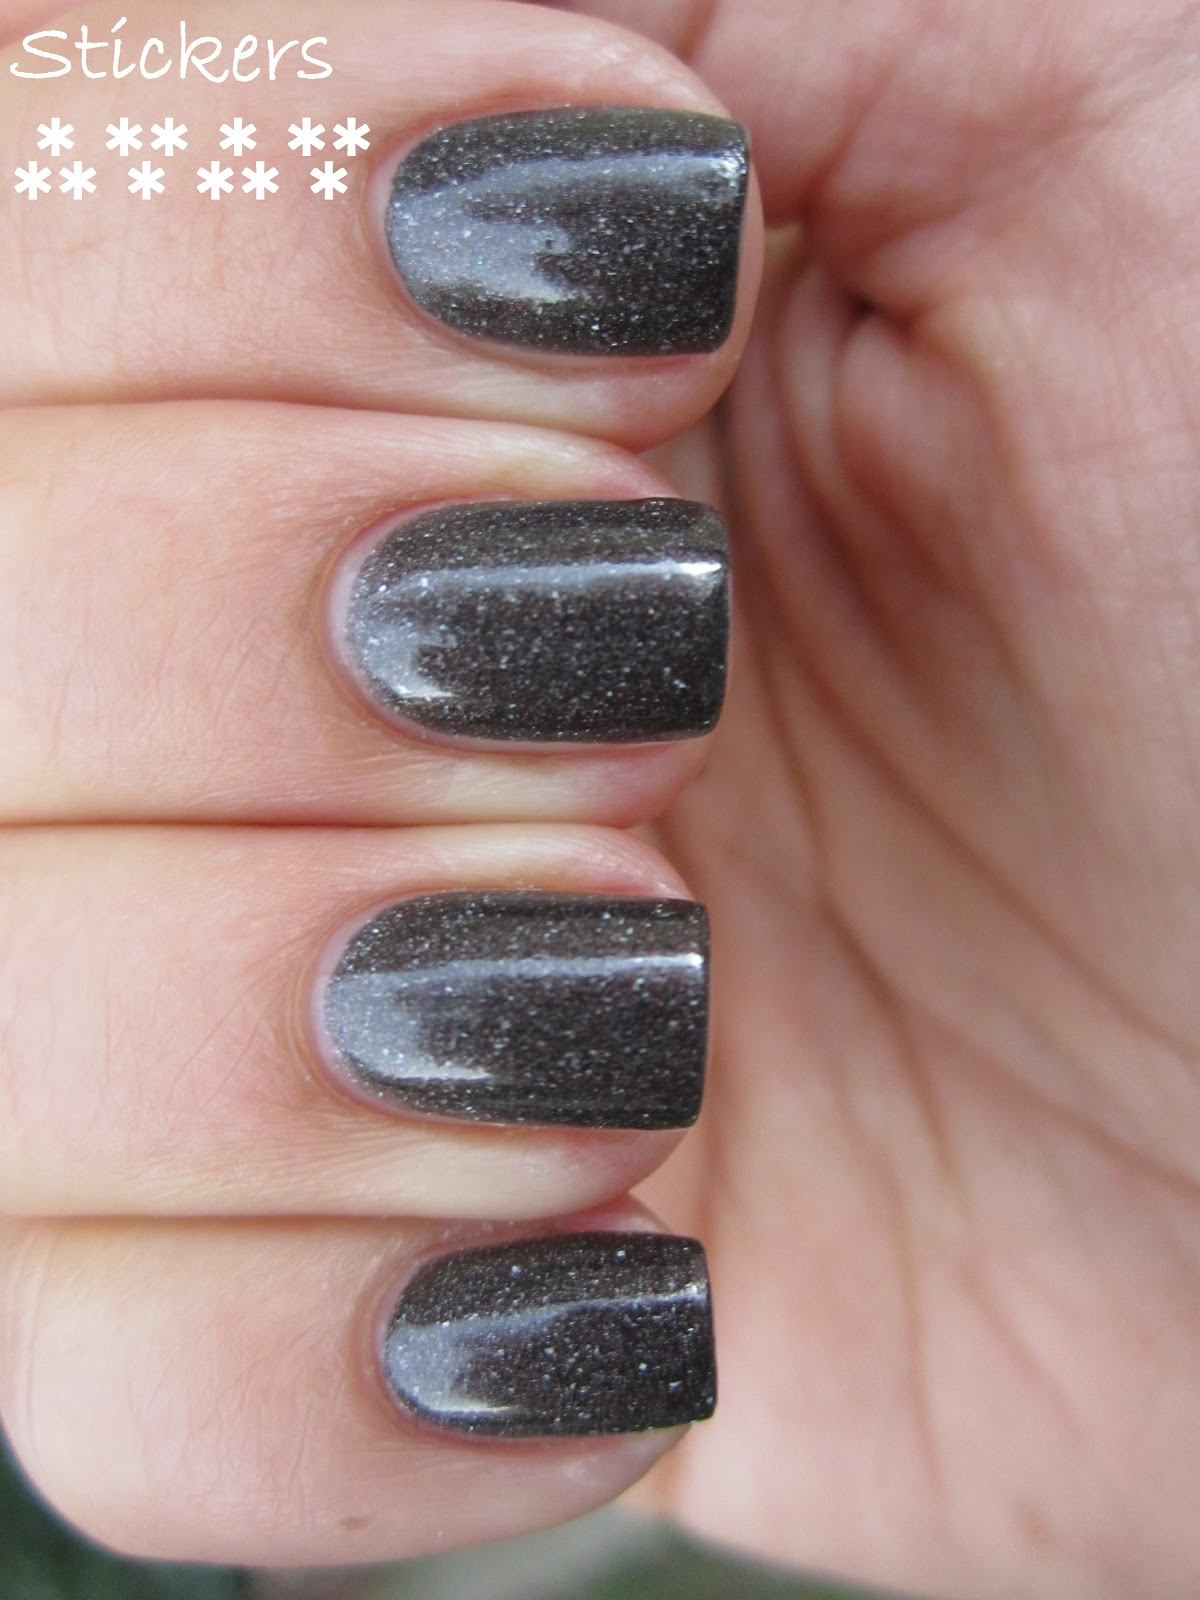 Nails, wanted!: OPI My Private Jet non holo version